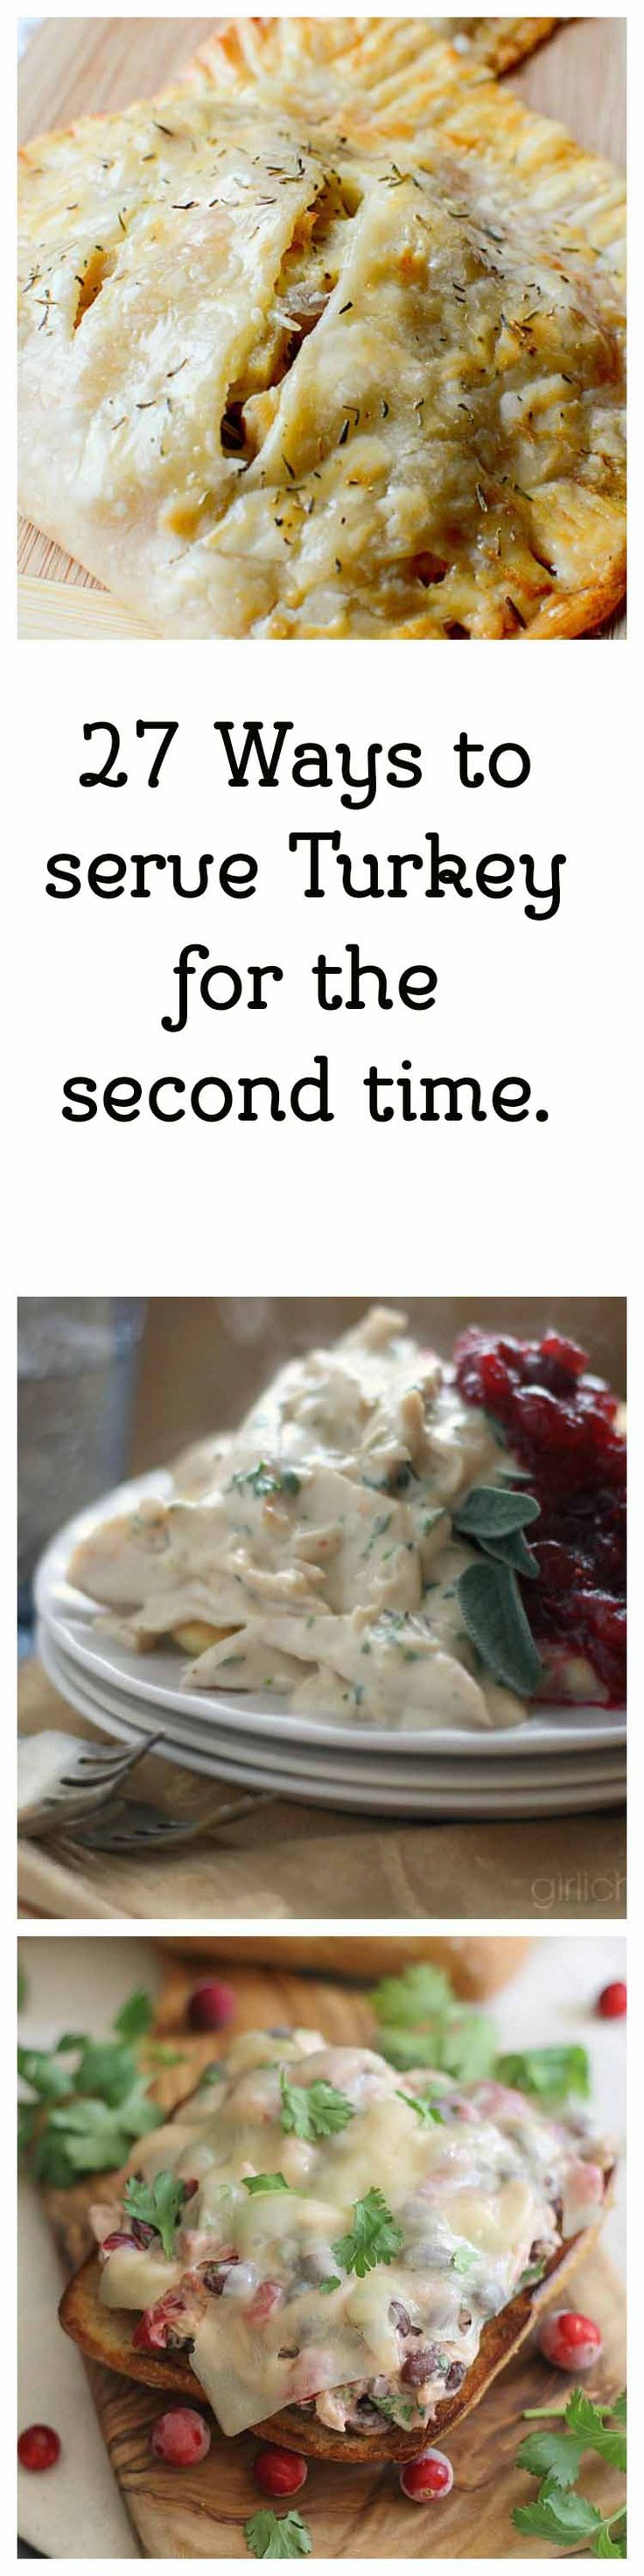 Have some left over turkey? I have 27 ideas for you to serve up turkey for the second time.